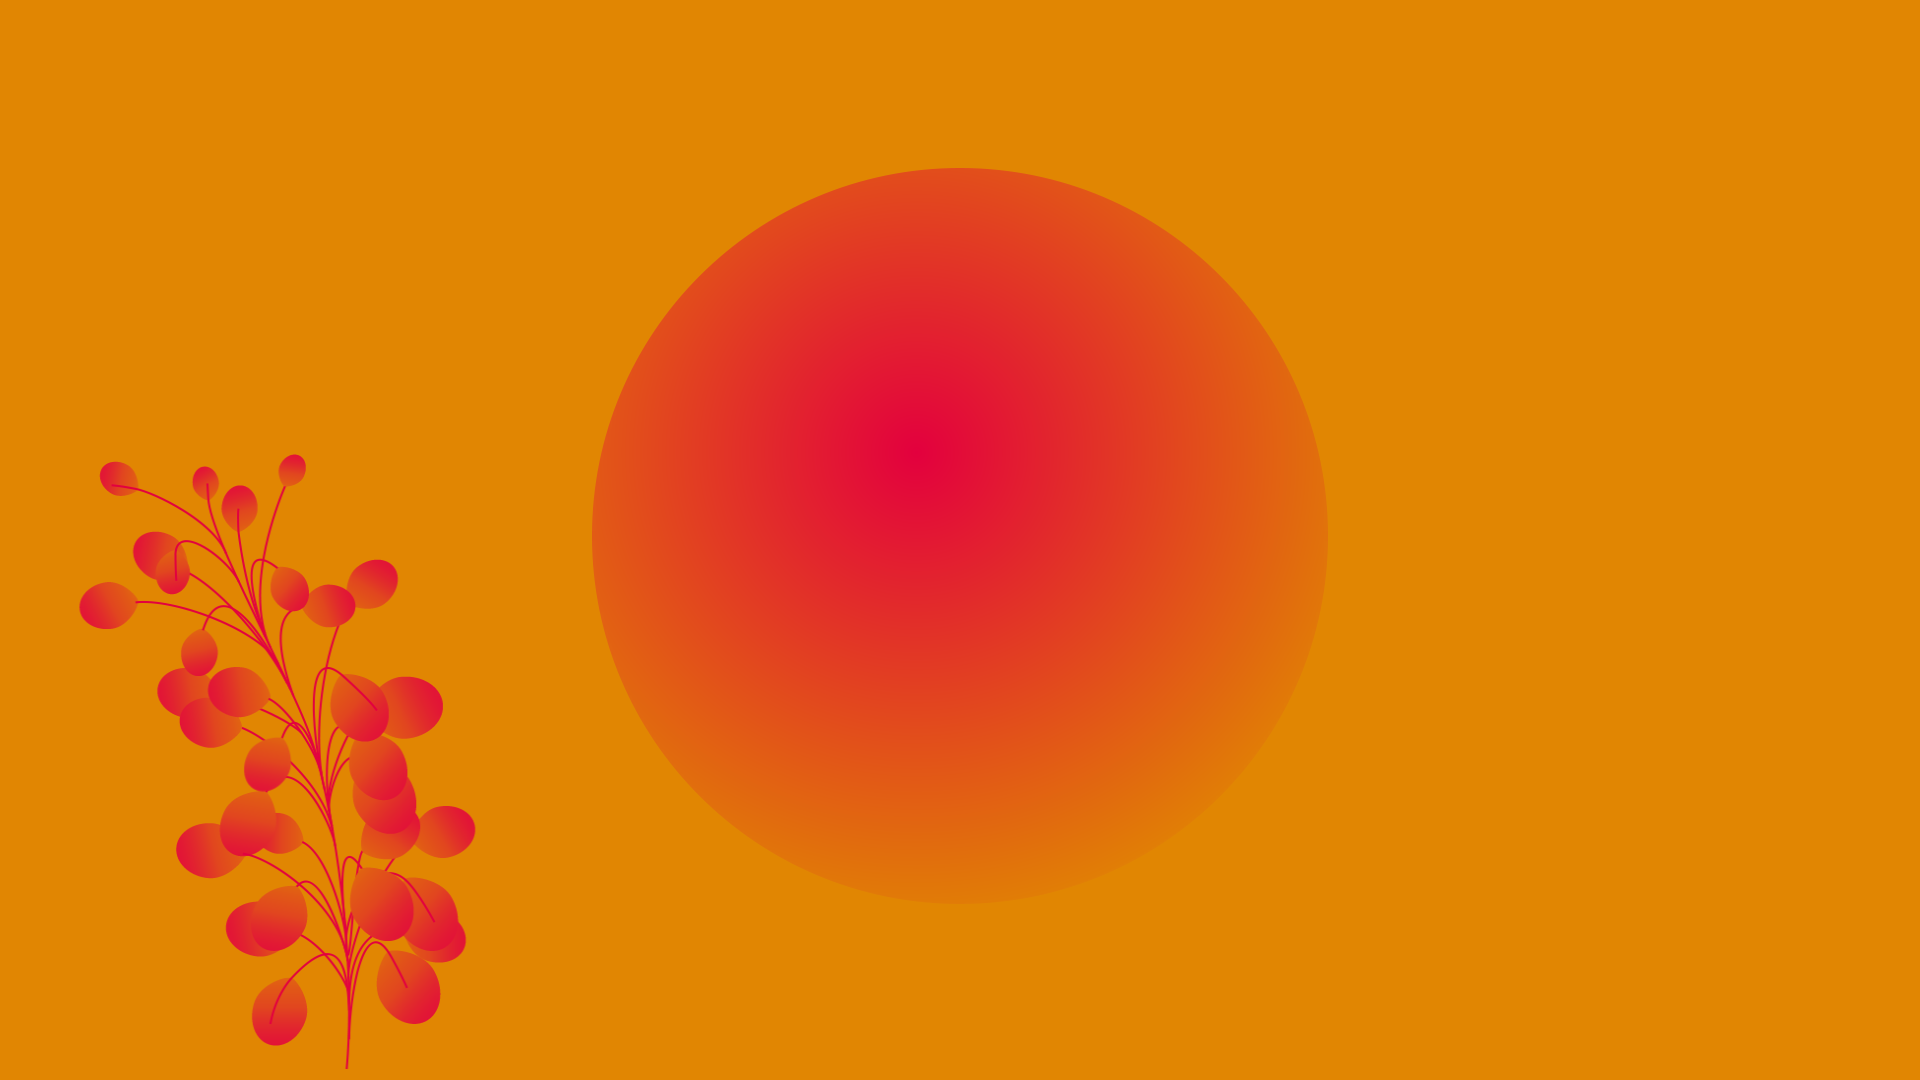 Brochures, inner circle of creative marketing, red circle on orange background with sprouting red plant.